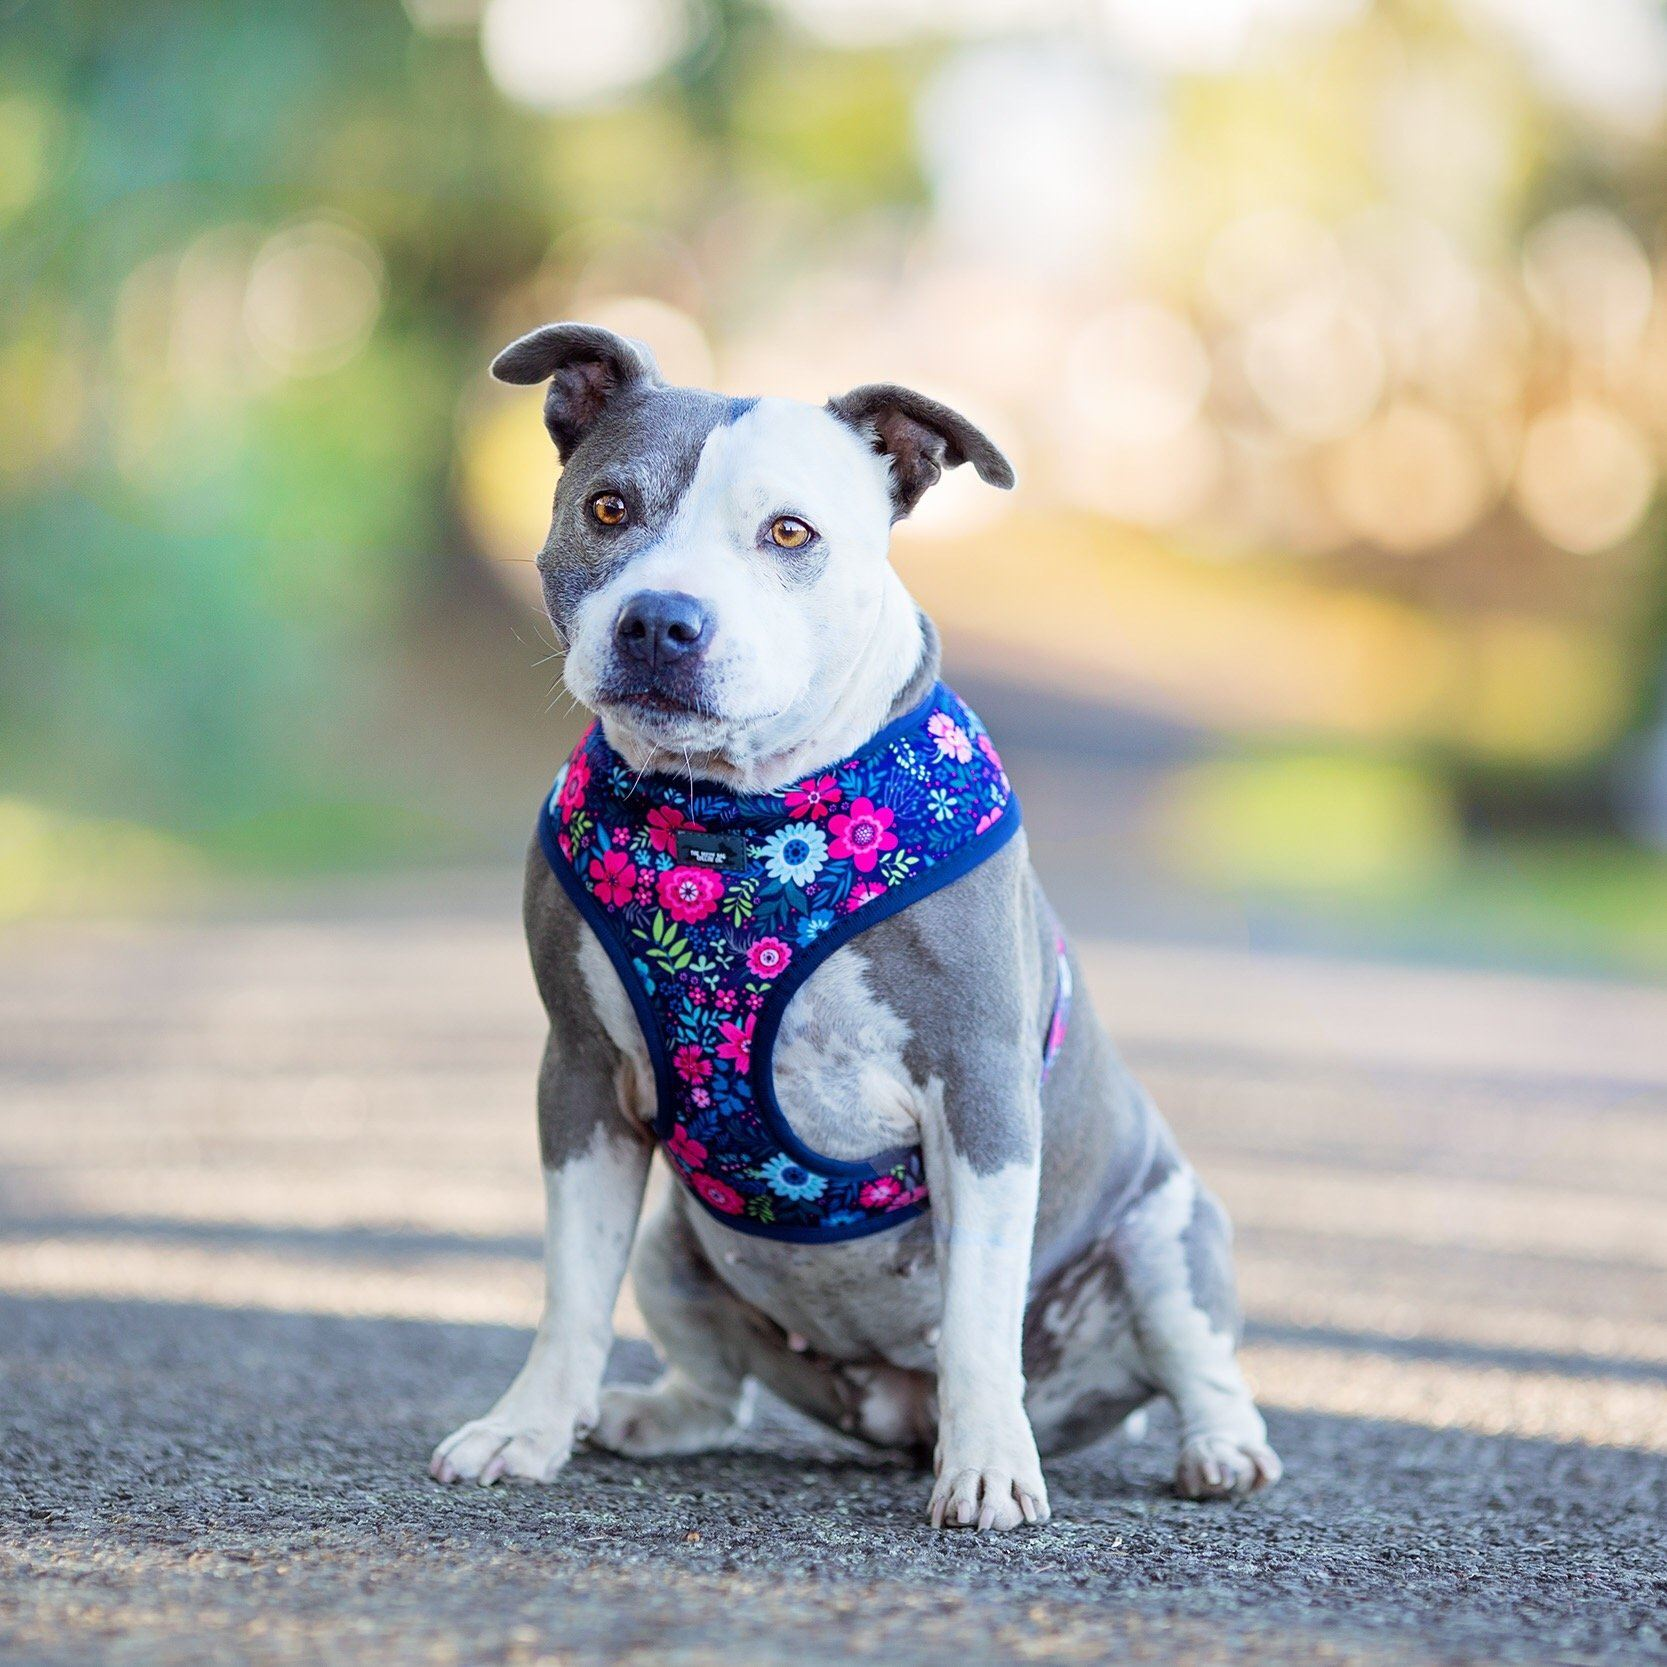 small dog harness, this is the best small dog harness, DOG HARNESS - Navy Floral - Standard Dog Harness-Dizzy Dog Collars-XS-Dizzy Dog Collars